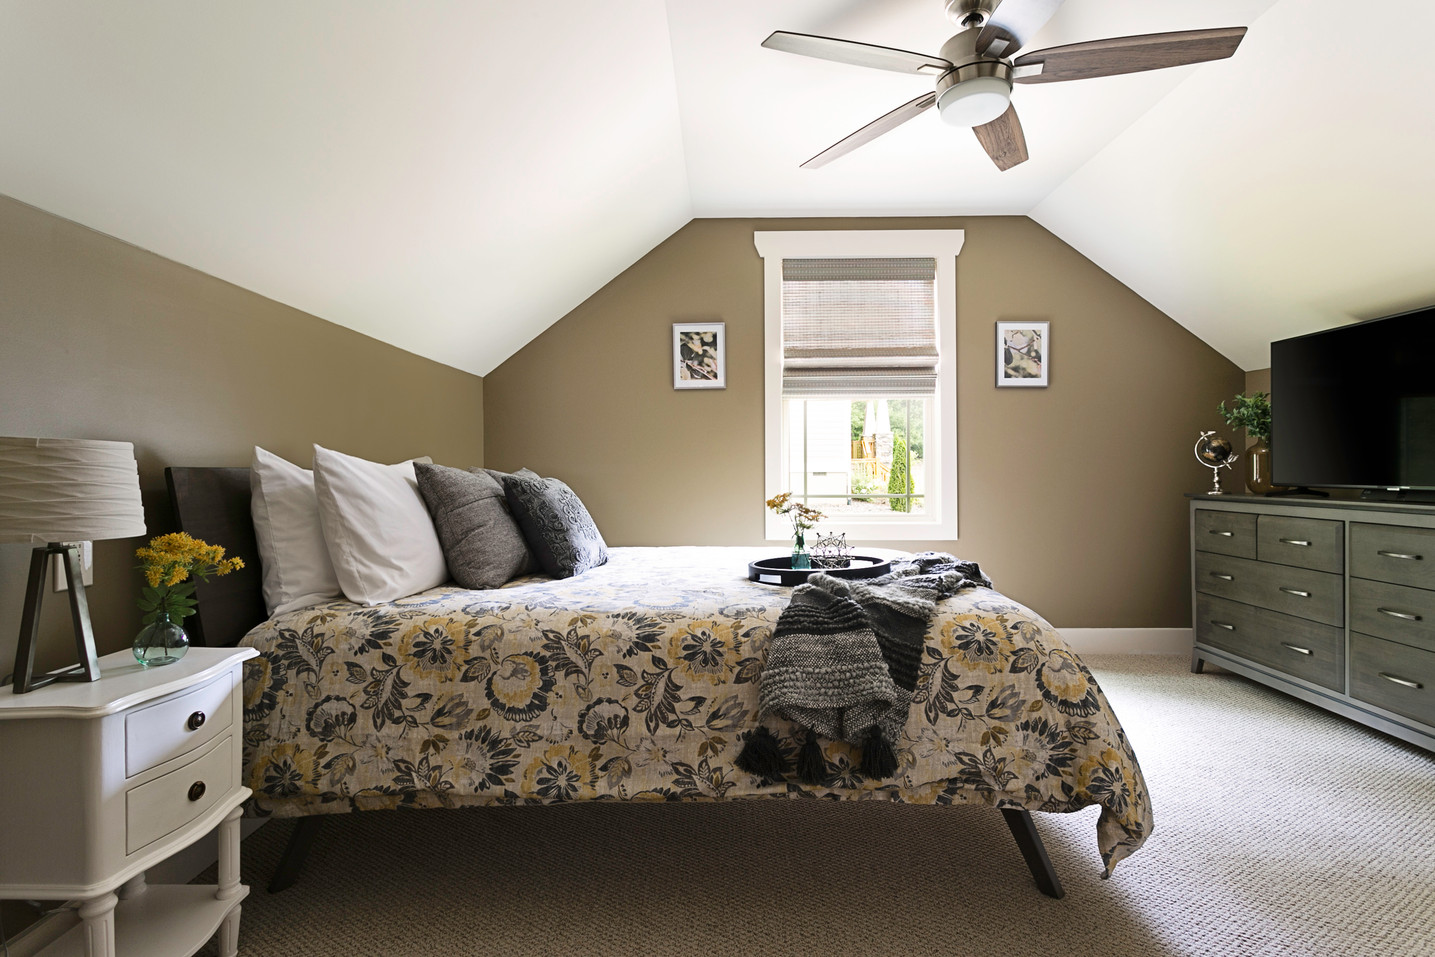 3 bedroom vacation rental with TV in the room